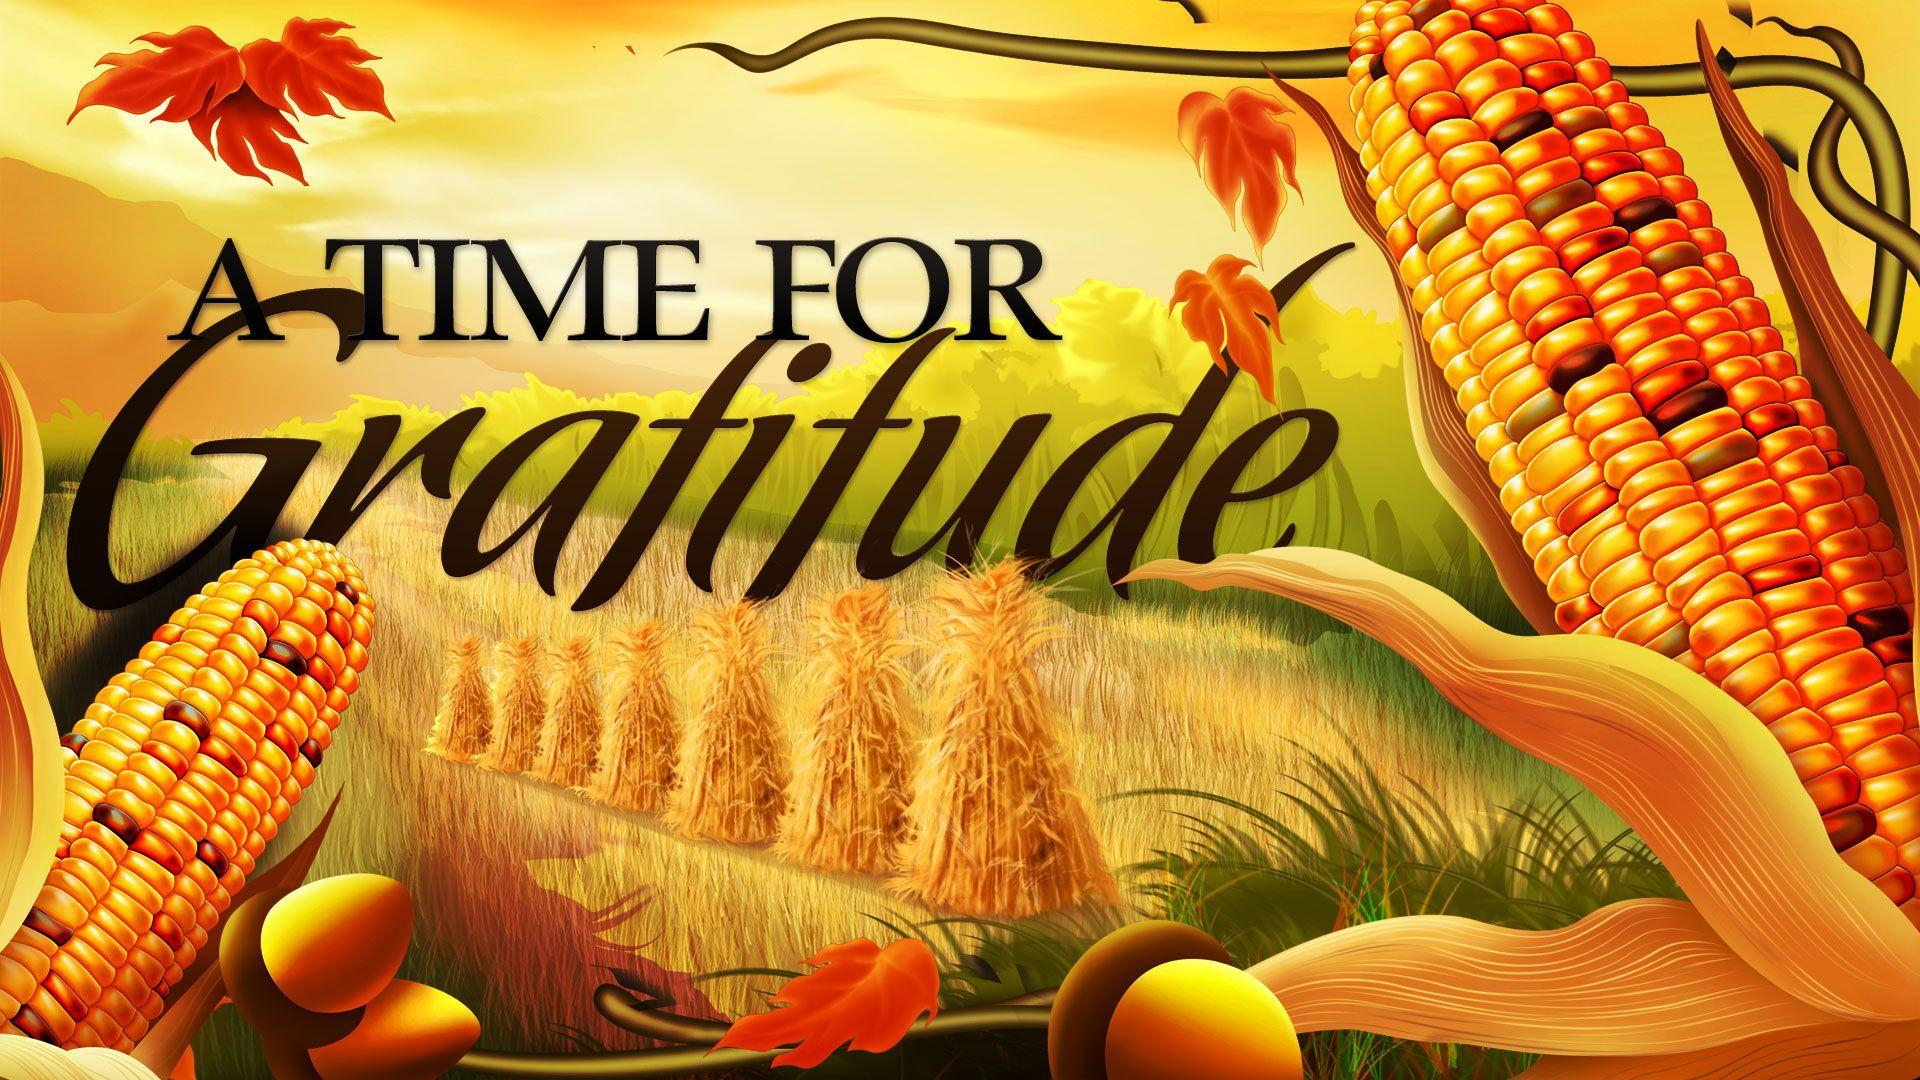 Happy Thanksgiving Day Gratitude Food Corn Latest Hd Wallpapers